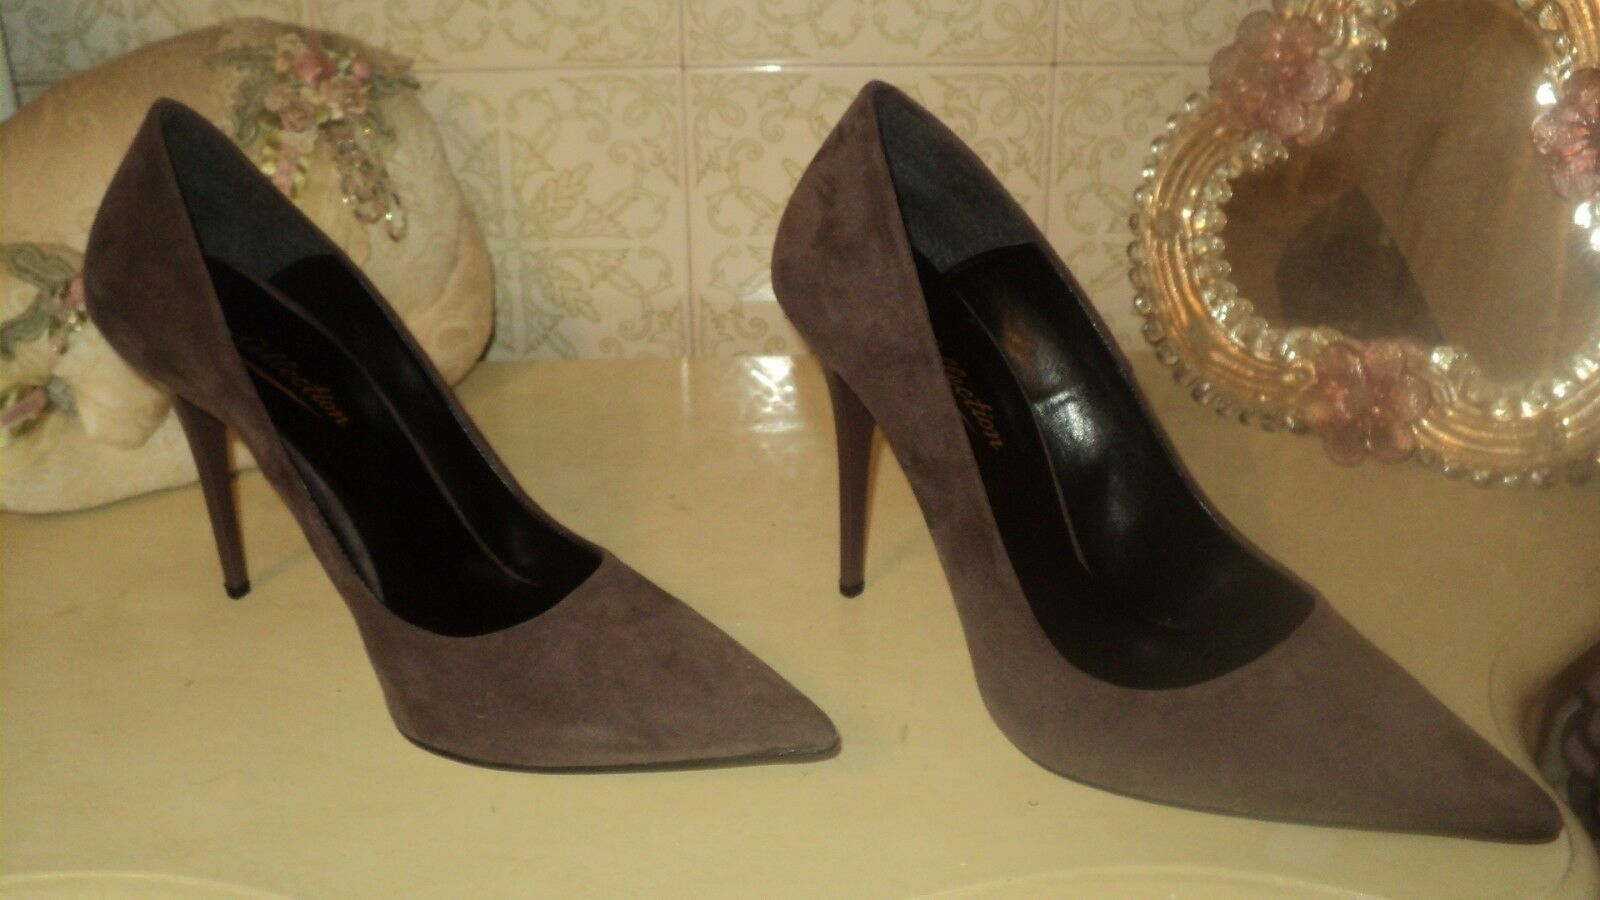 fino al 65% di sconto SUEDE Marrone PURPLISH PURPLISH PURPLISH POINTED PUMPS STILETTO HEELS EU39 US8 UK6  prezzo ragionevole